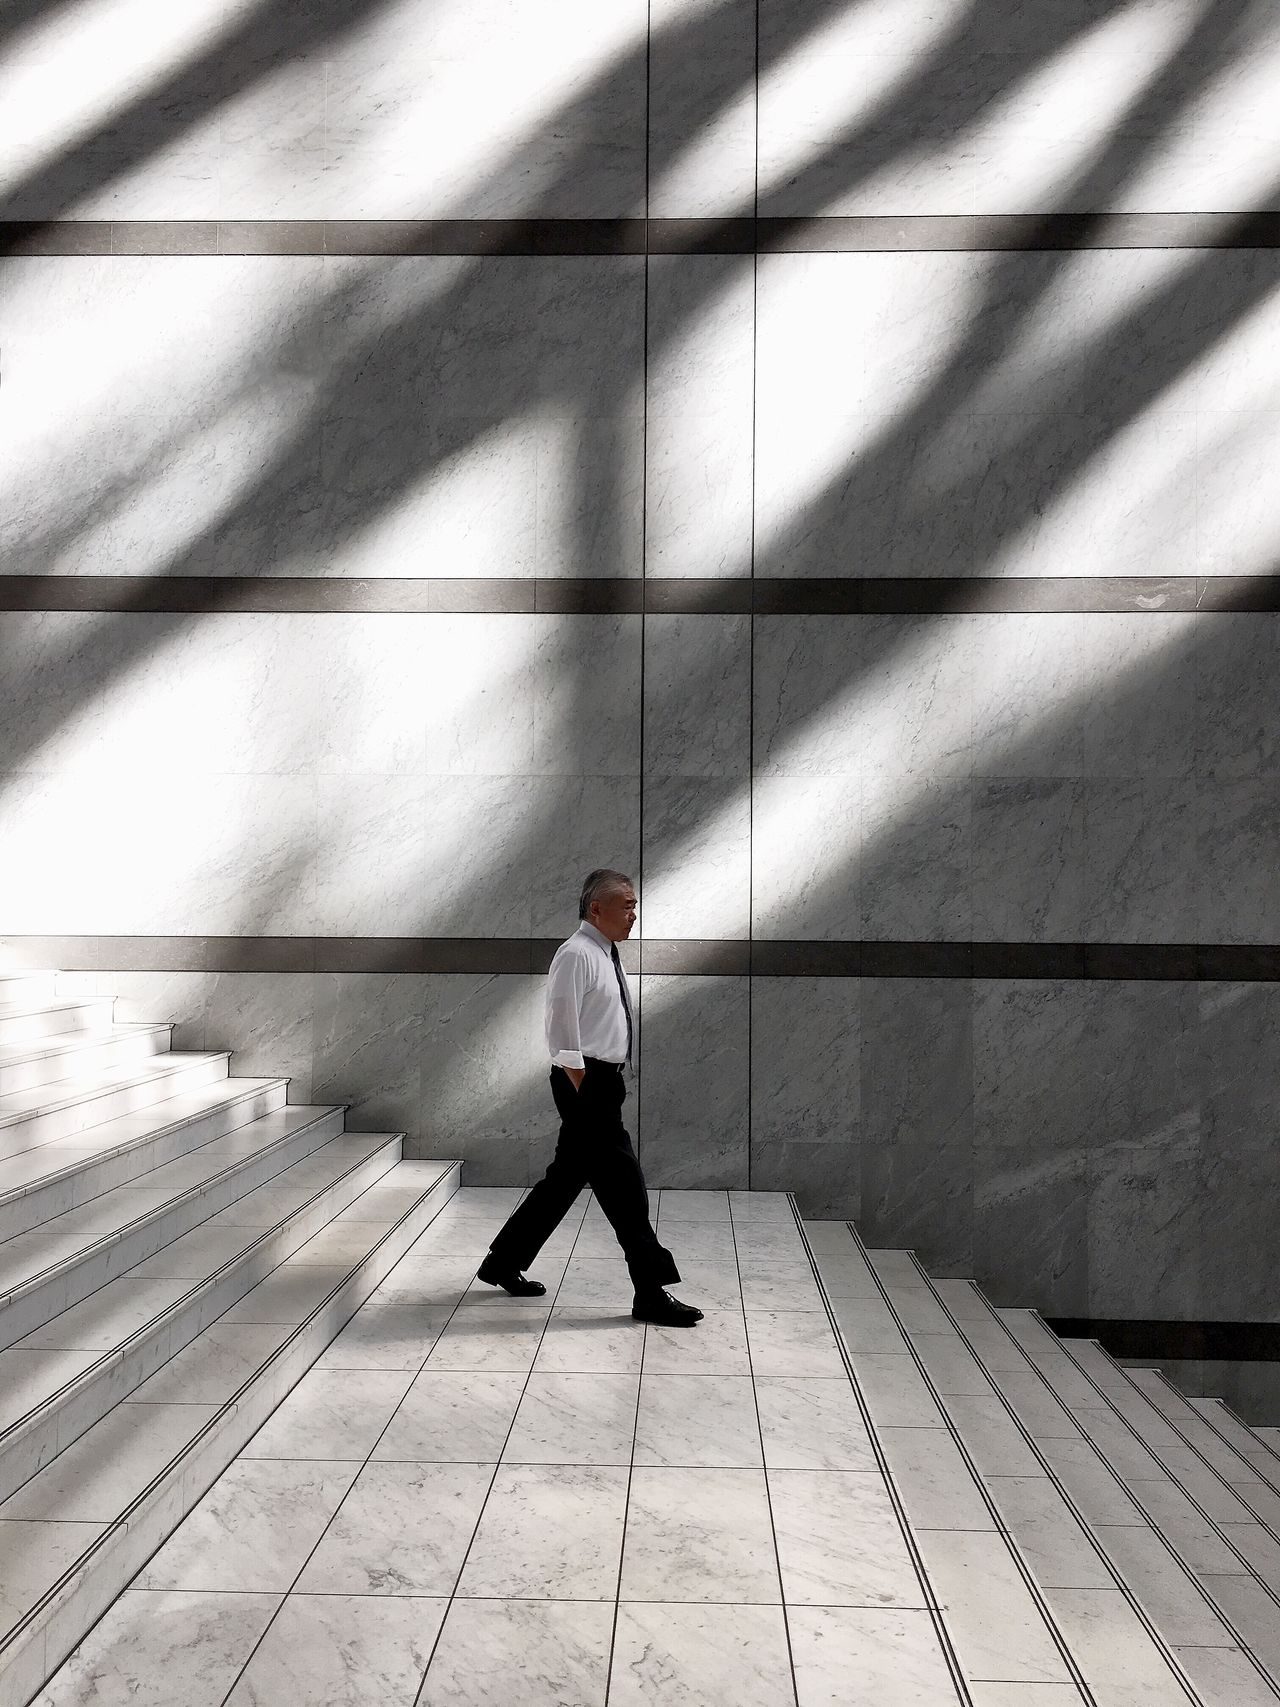 🚶🏻 Businessman Only Men Architecture Strideby Minimal Walking Minimalism Light And Shadow IPhoneography Minimalobsession Streetphotography Minimalist City Street